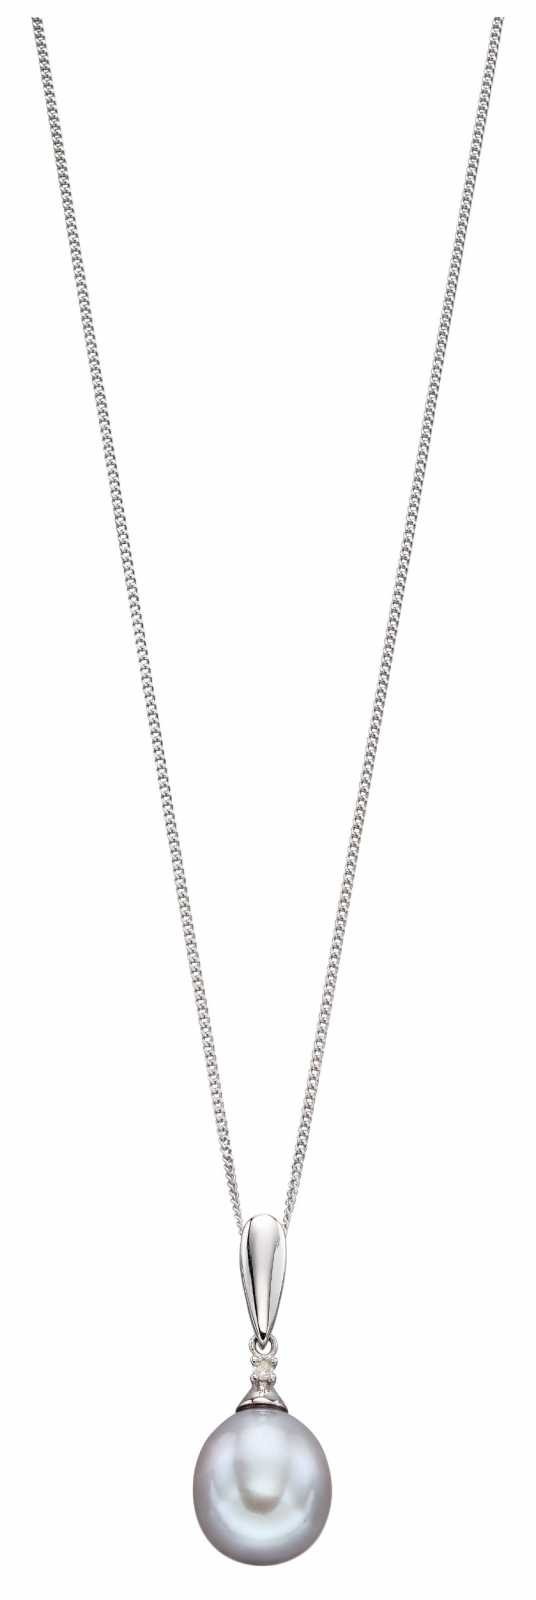 Elements Gold 9k White Gold Grey Pearl Diamond Pendant Only GP2186H